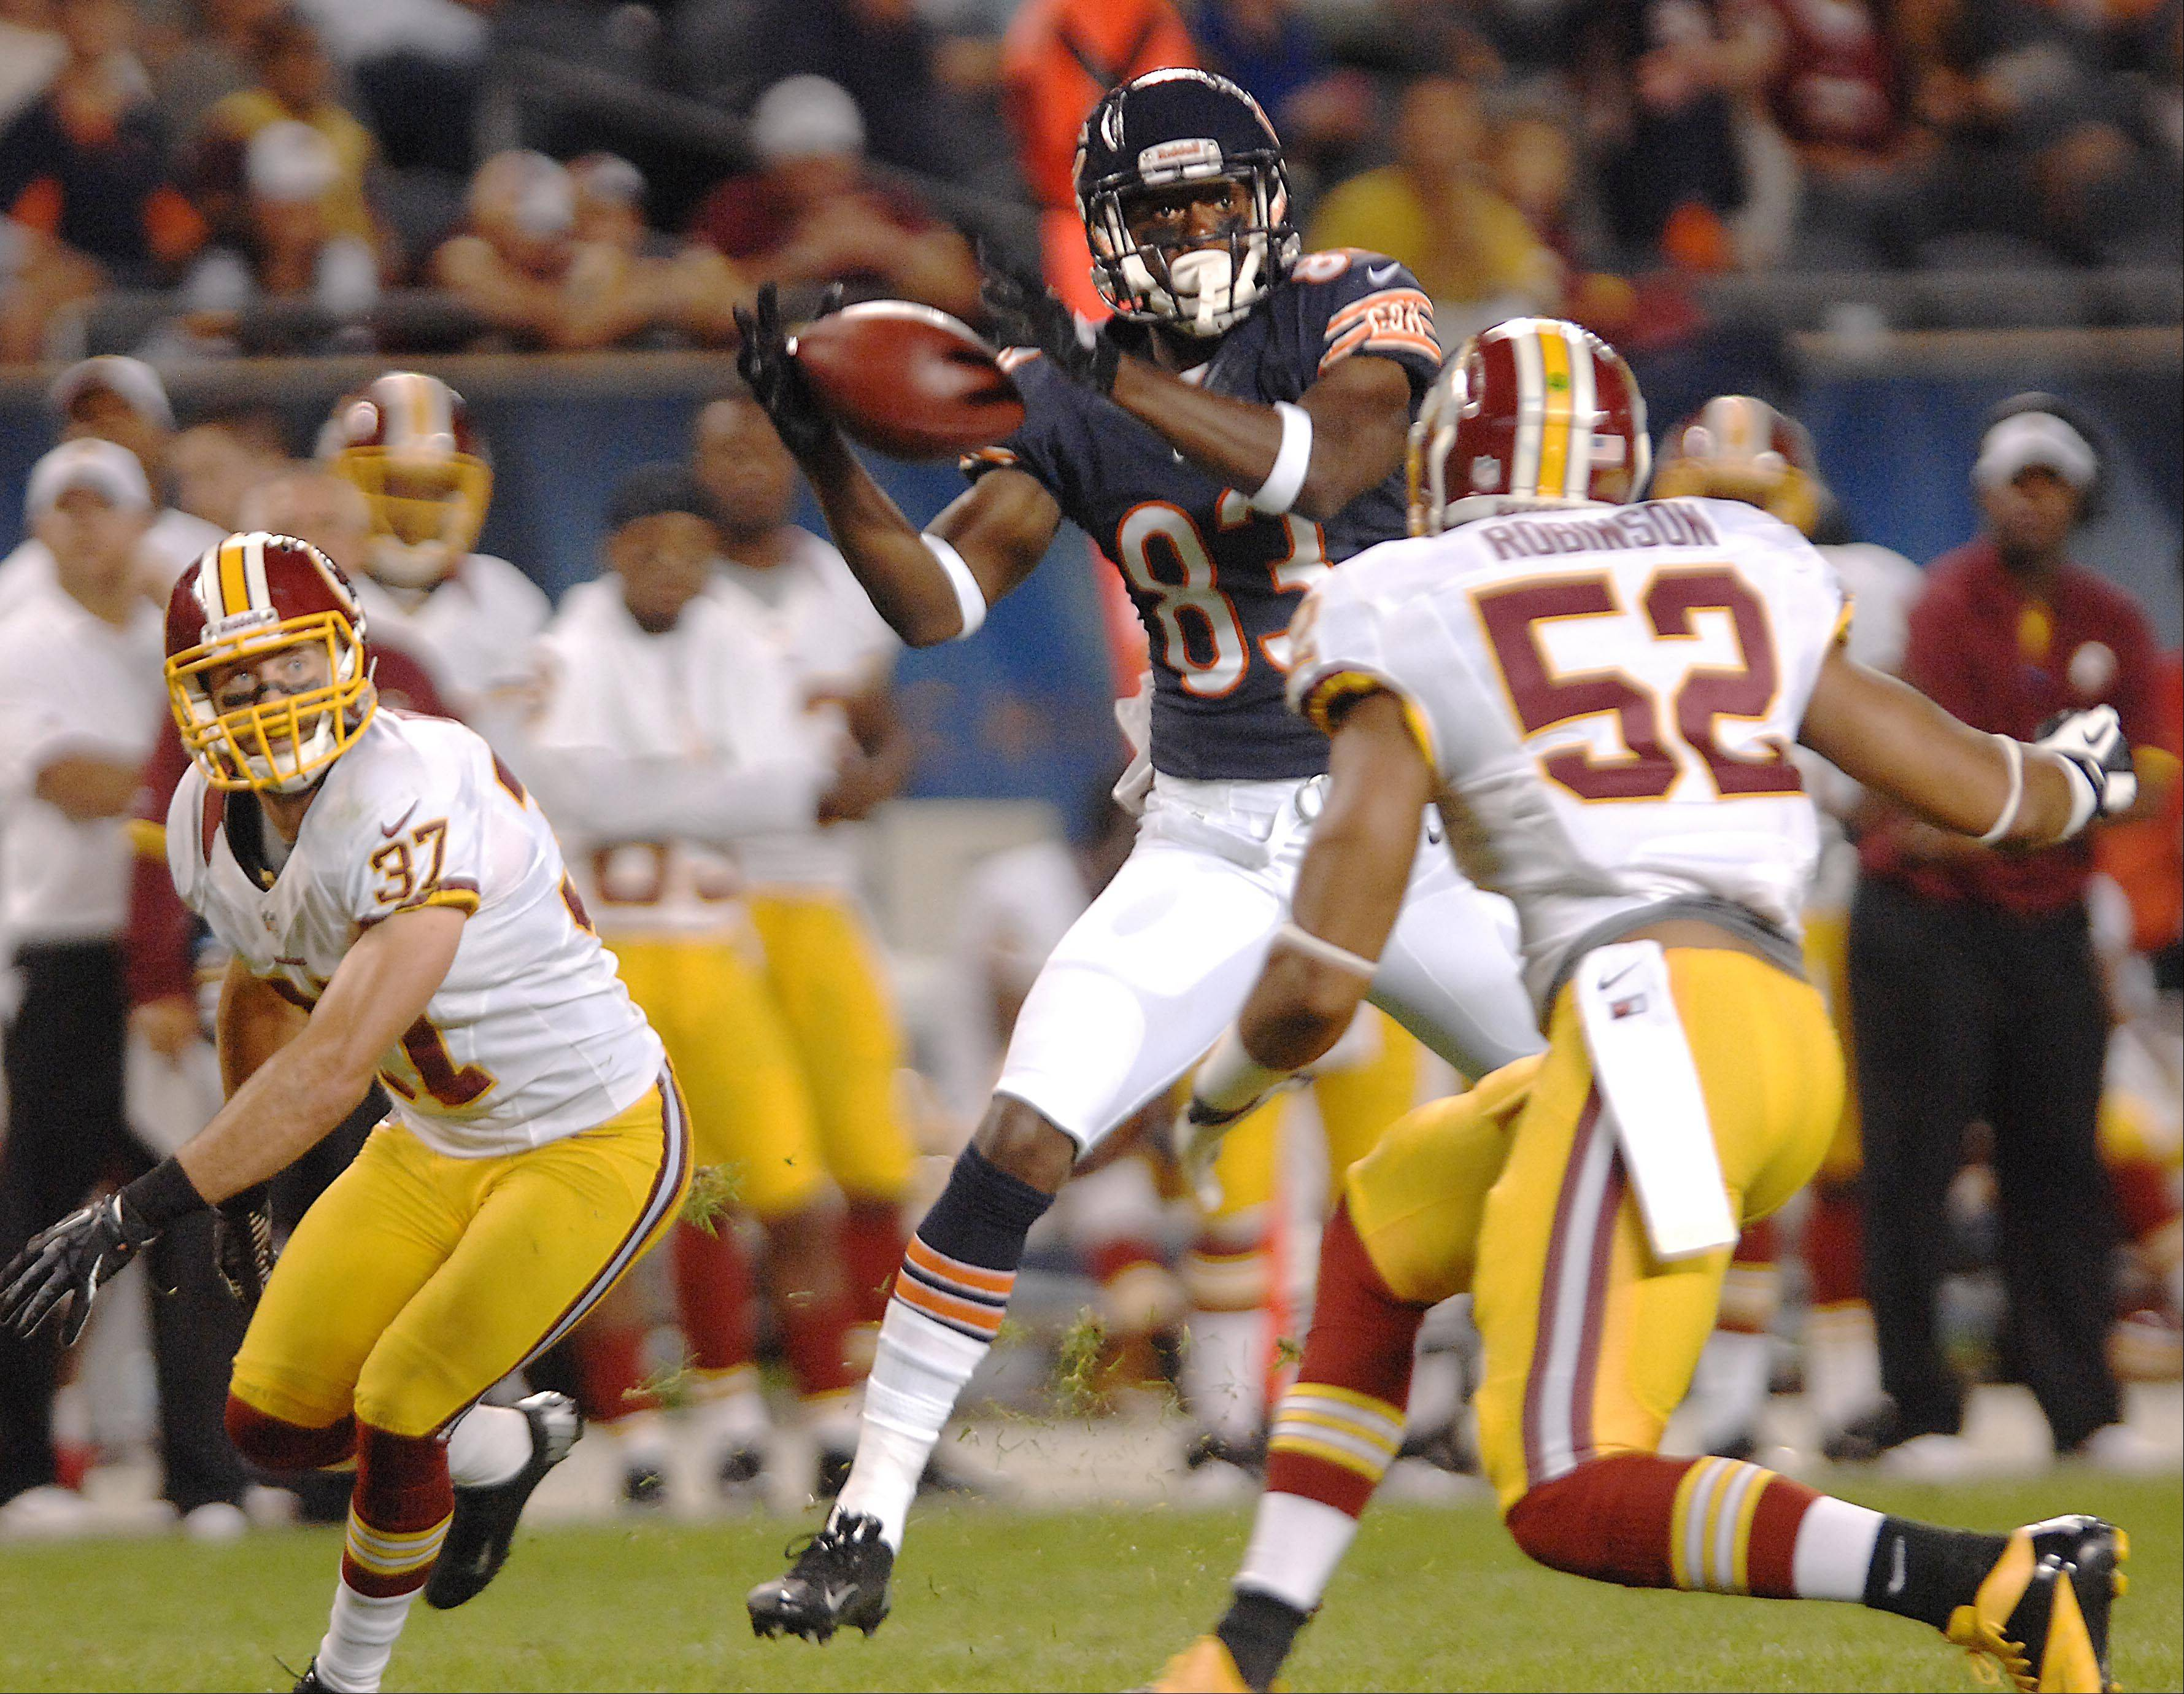 Chicago Bears wide receiver Chris Summers makes a catch that he would fumble seconds later Saturday against the Washington Redskins in the second preseason game at Soldier Field in Chicago.